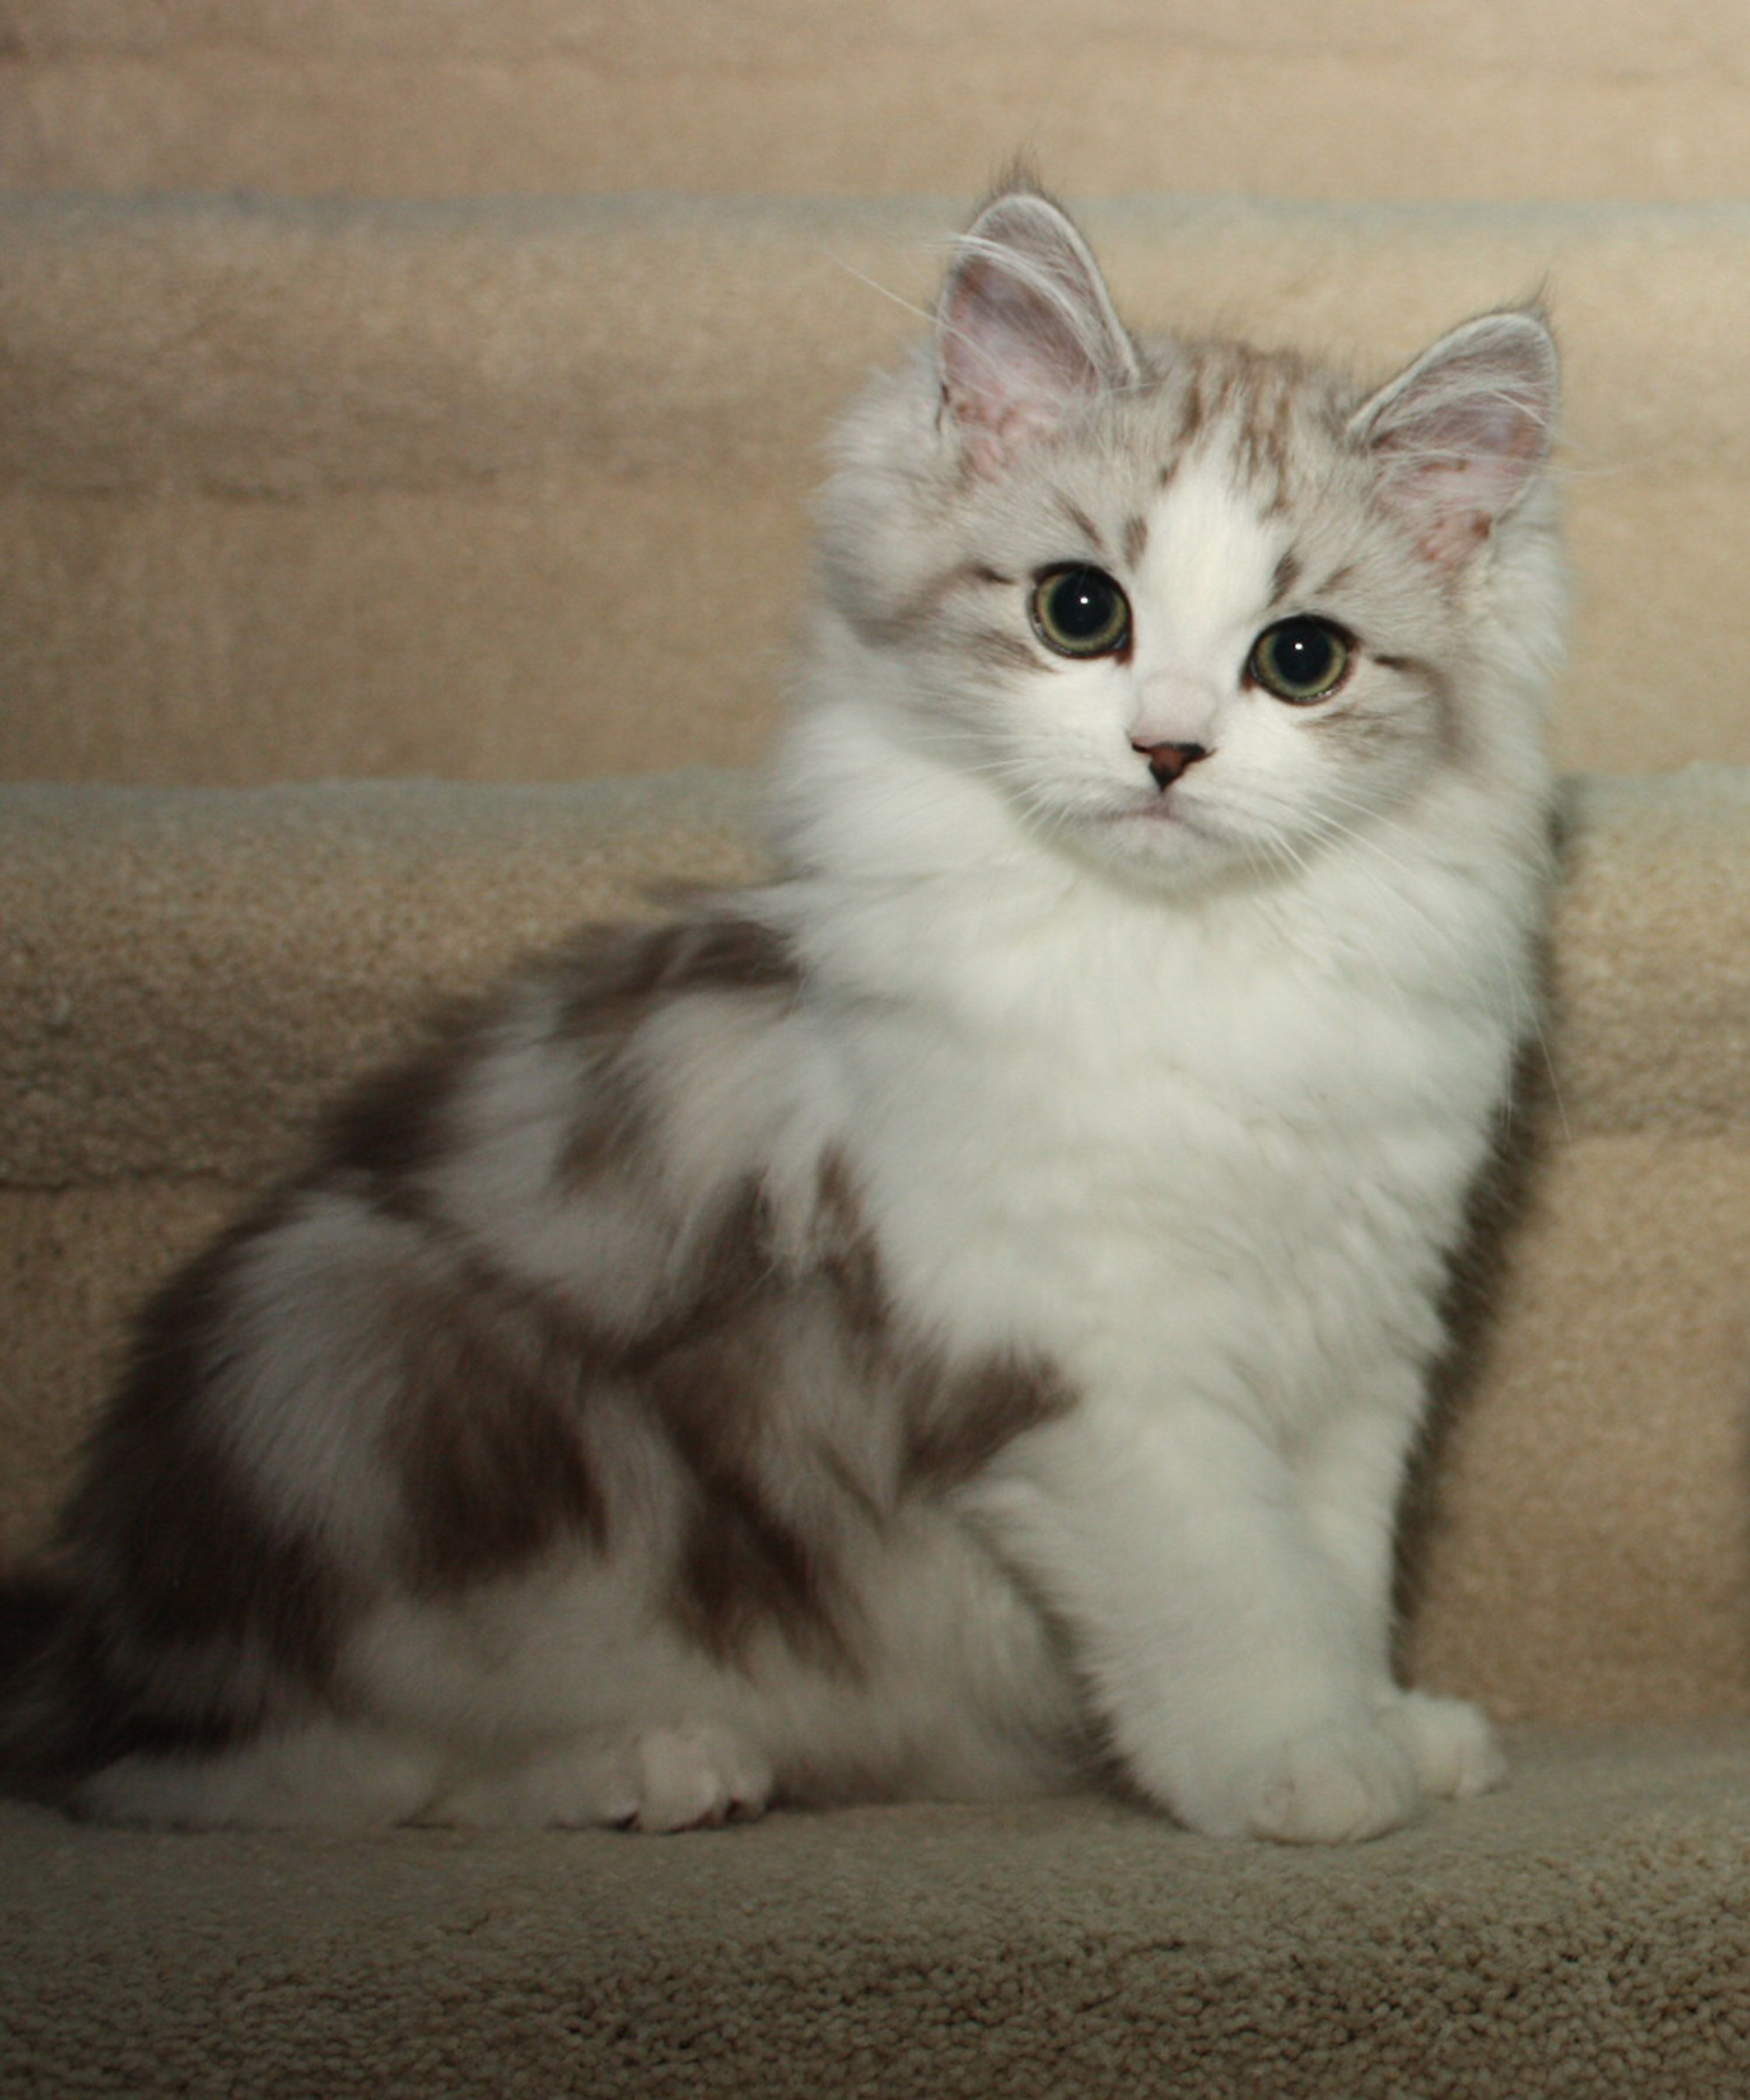 Ragamuffin Kittens Ragamuffin Kittens Ragamuffin Cat Kittens Cutest